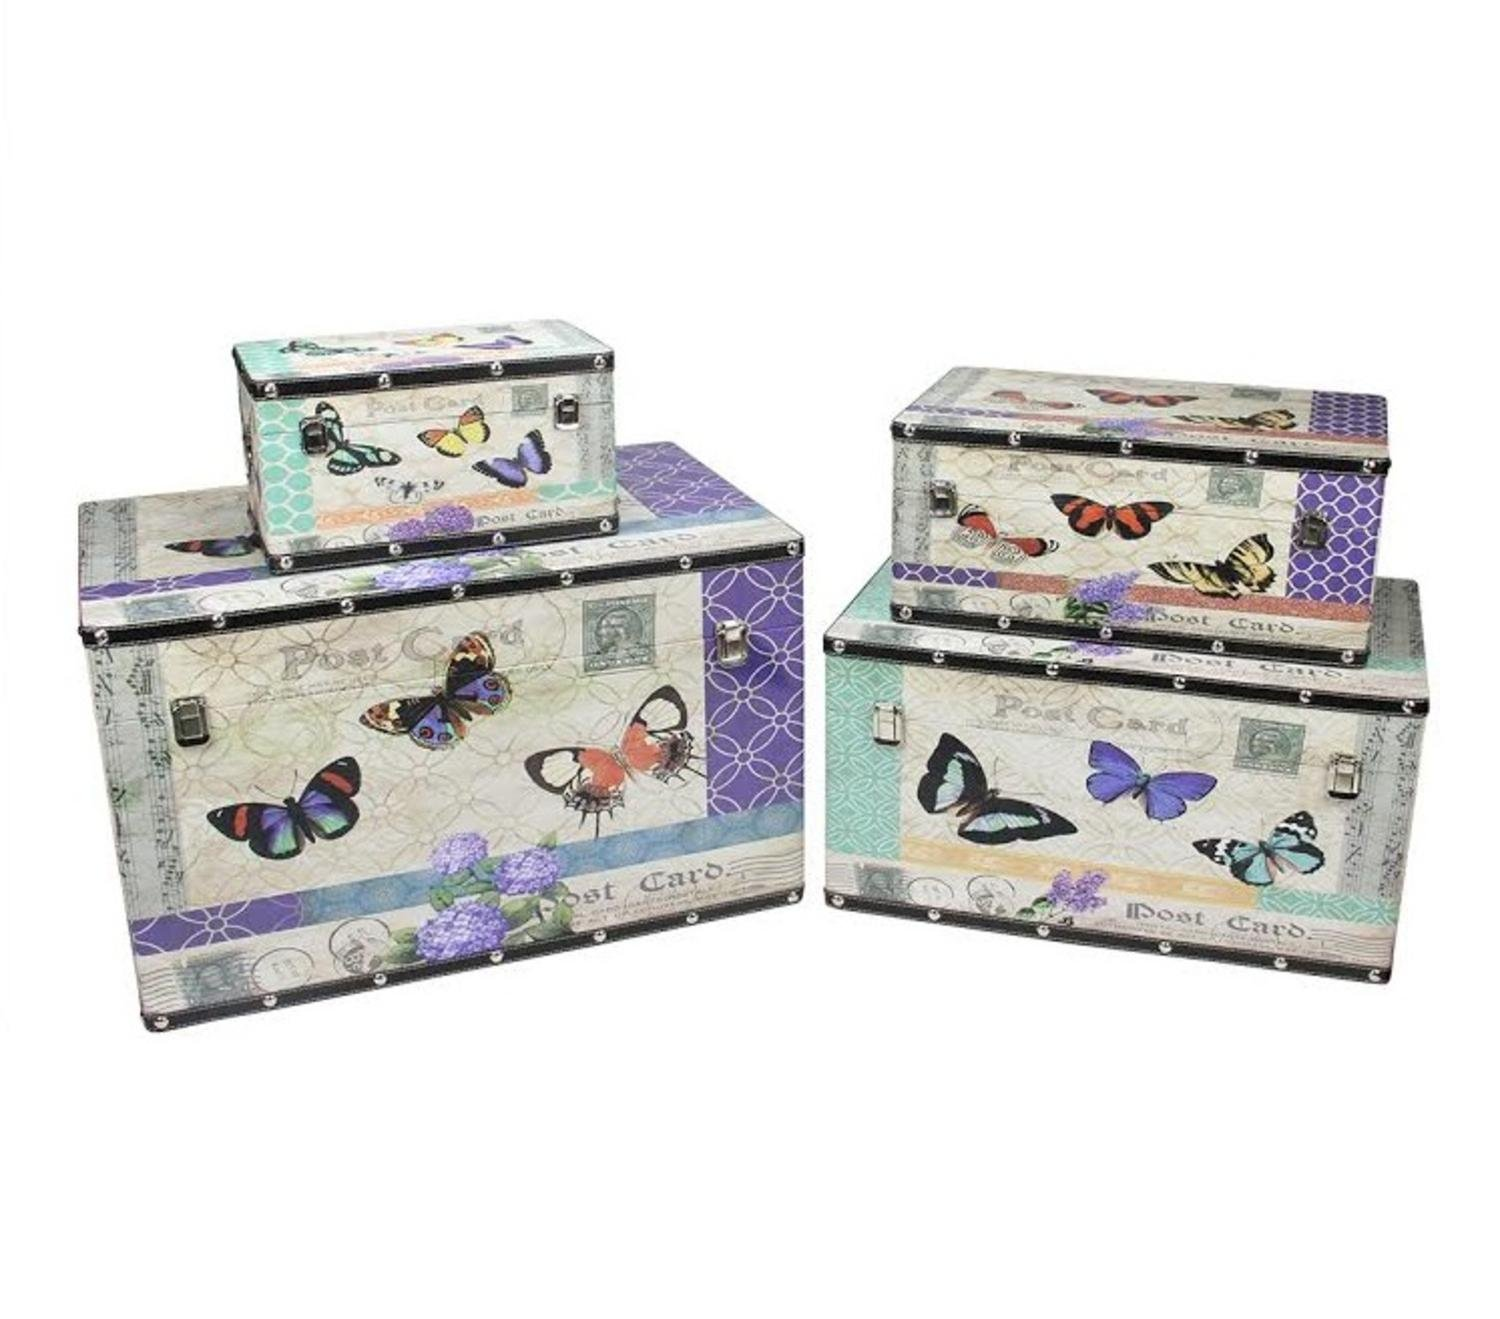 Northlight Set of 4 Wooden Garden-Style Butterfly Decorative Storage Boxes 14-27.5, 14''-27.5'', Multicolored by Northlight (Image #1)